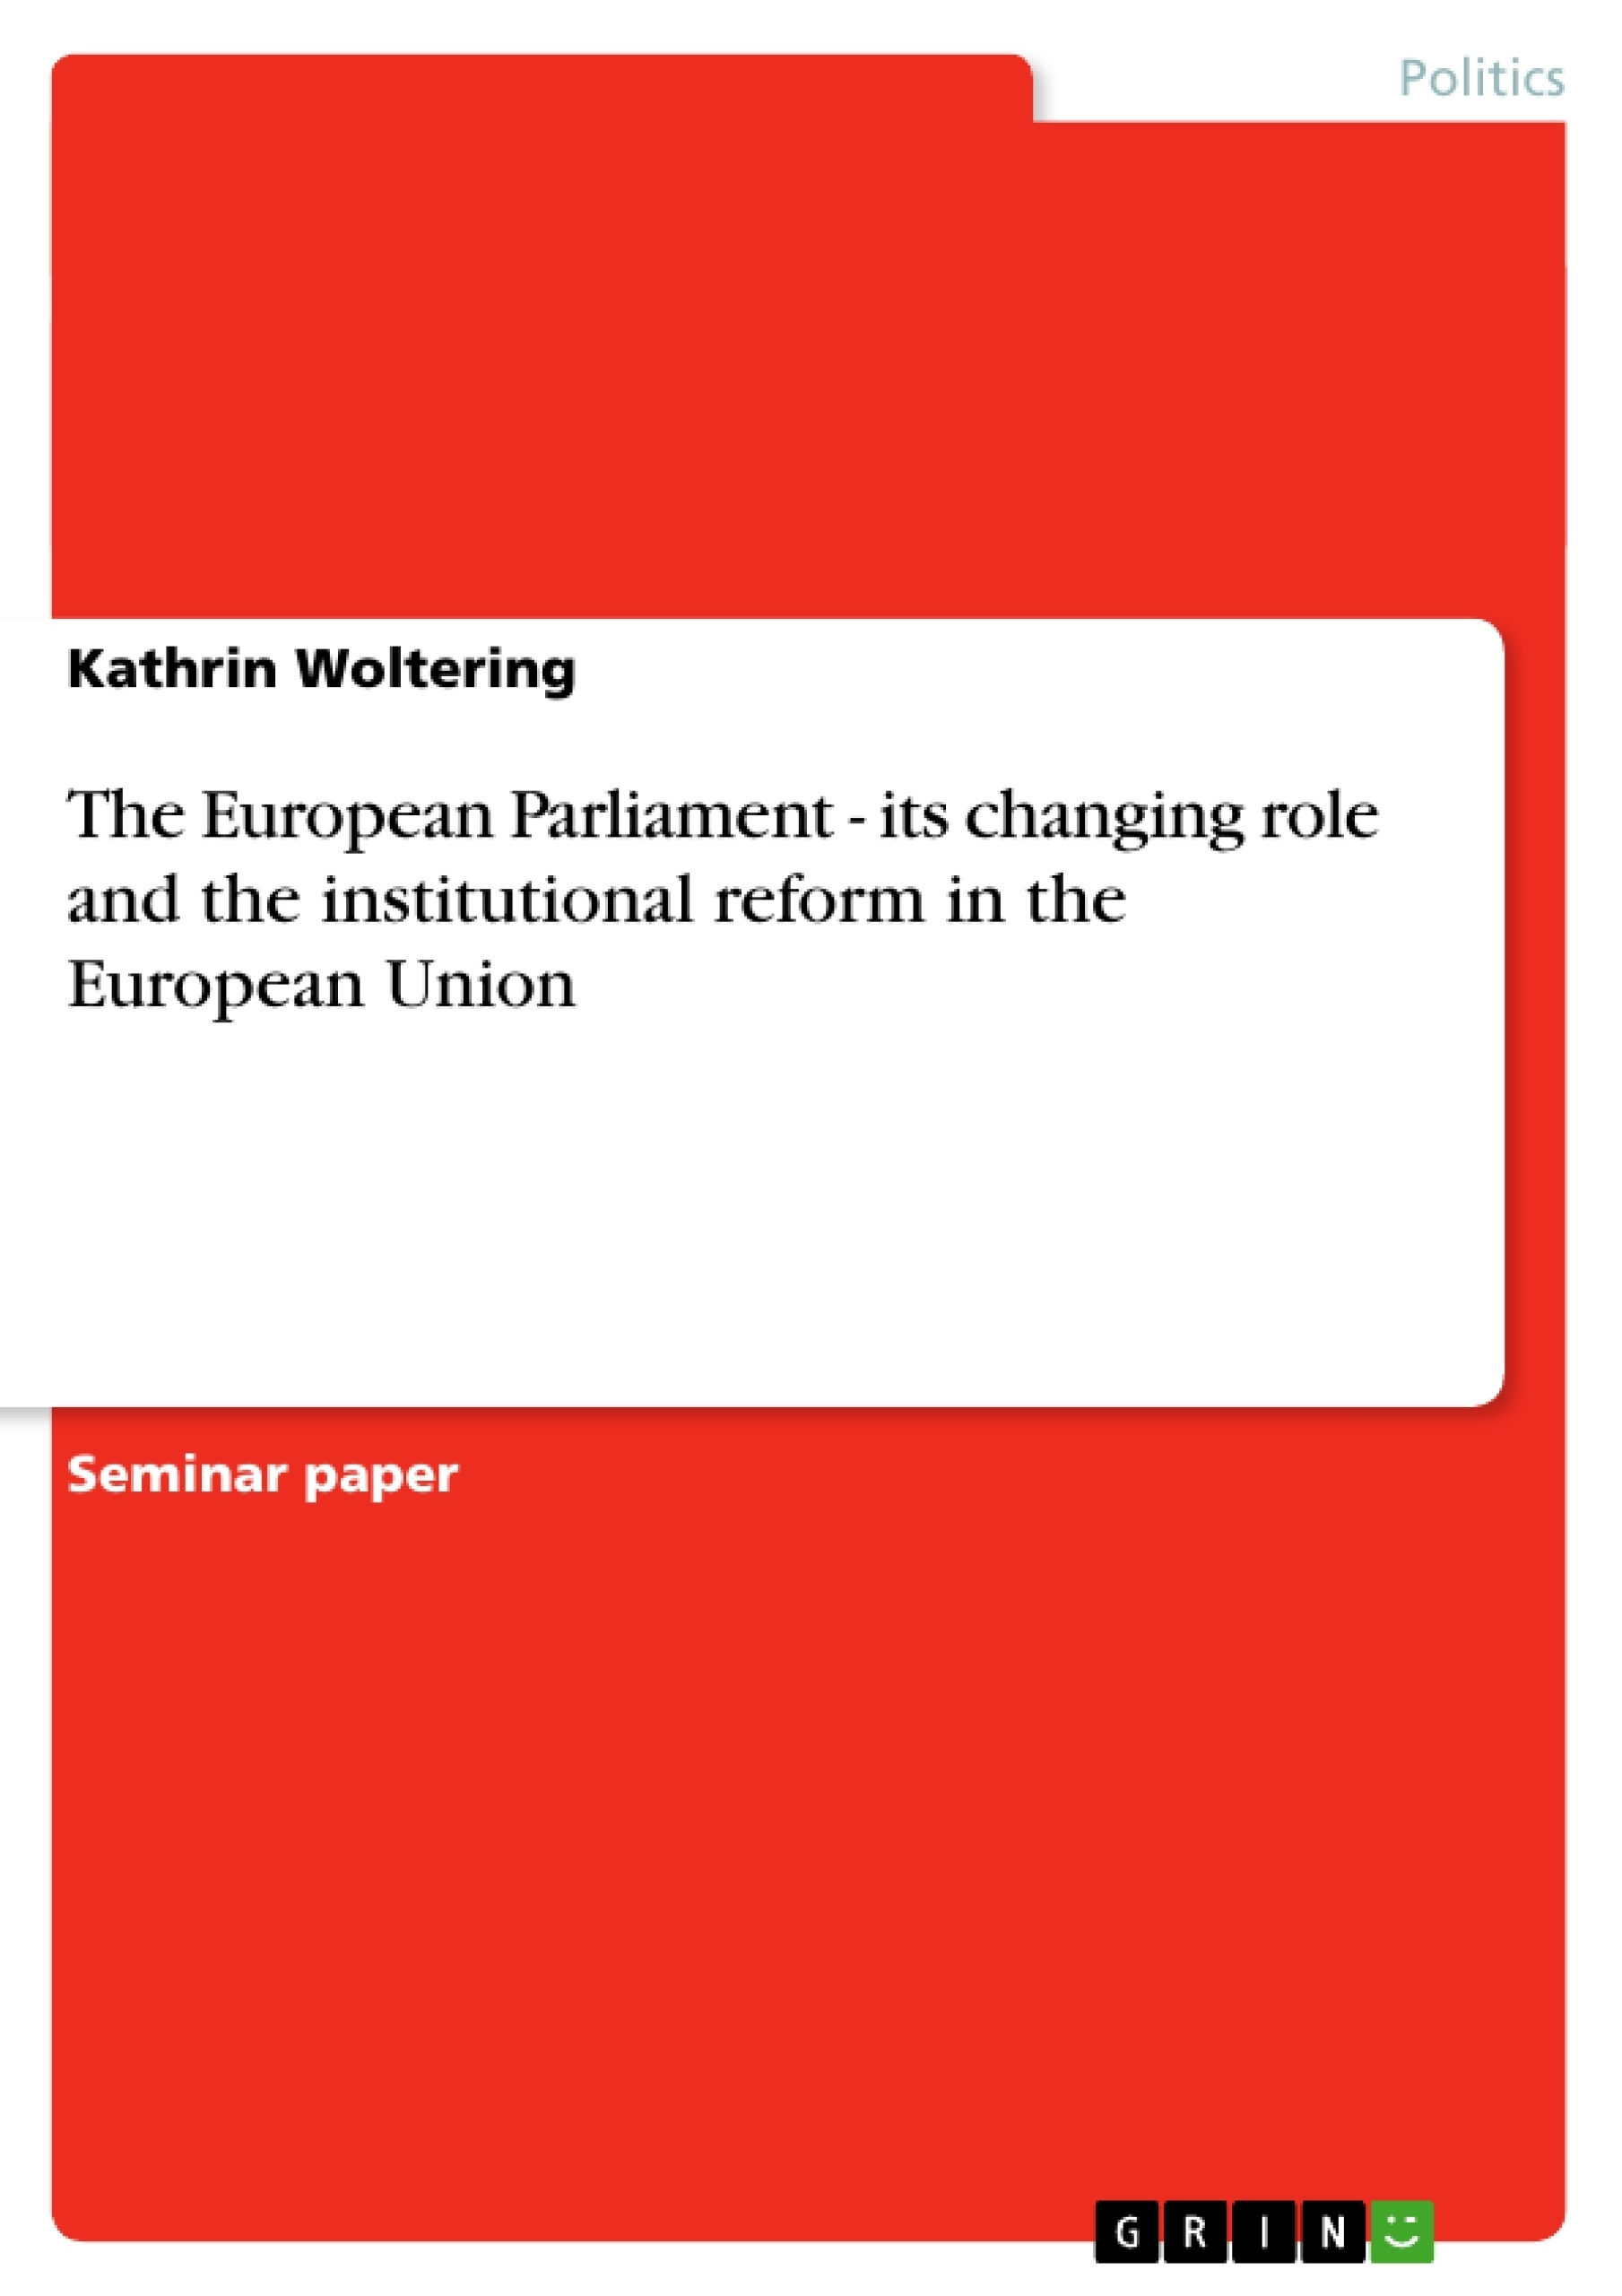 Title: The European Parliament - its changing role and the institutional reform in the European Union